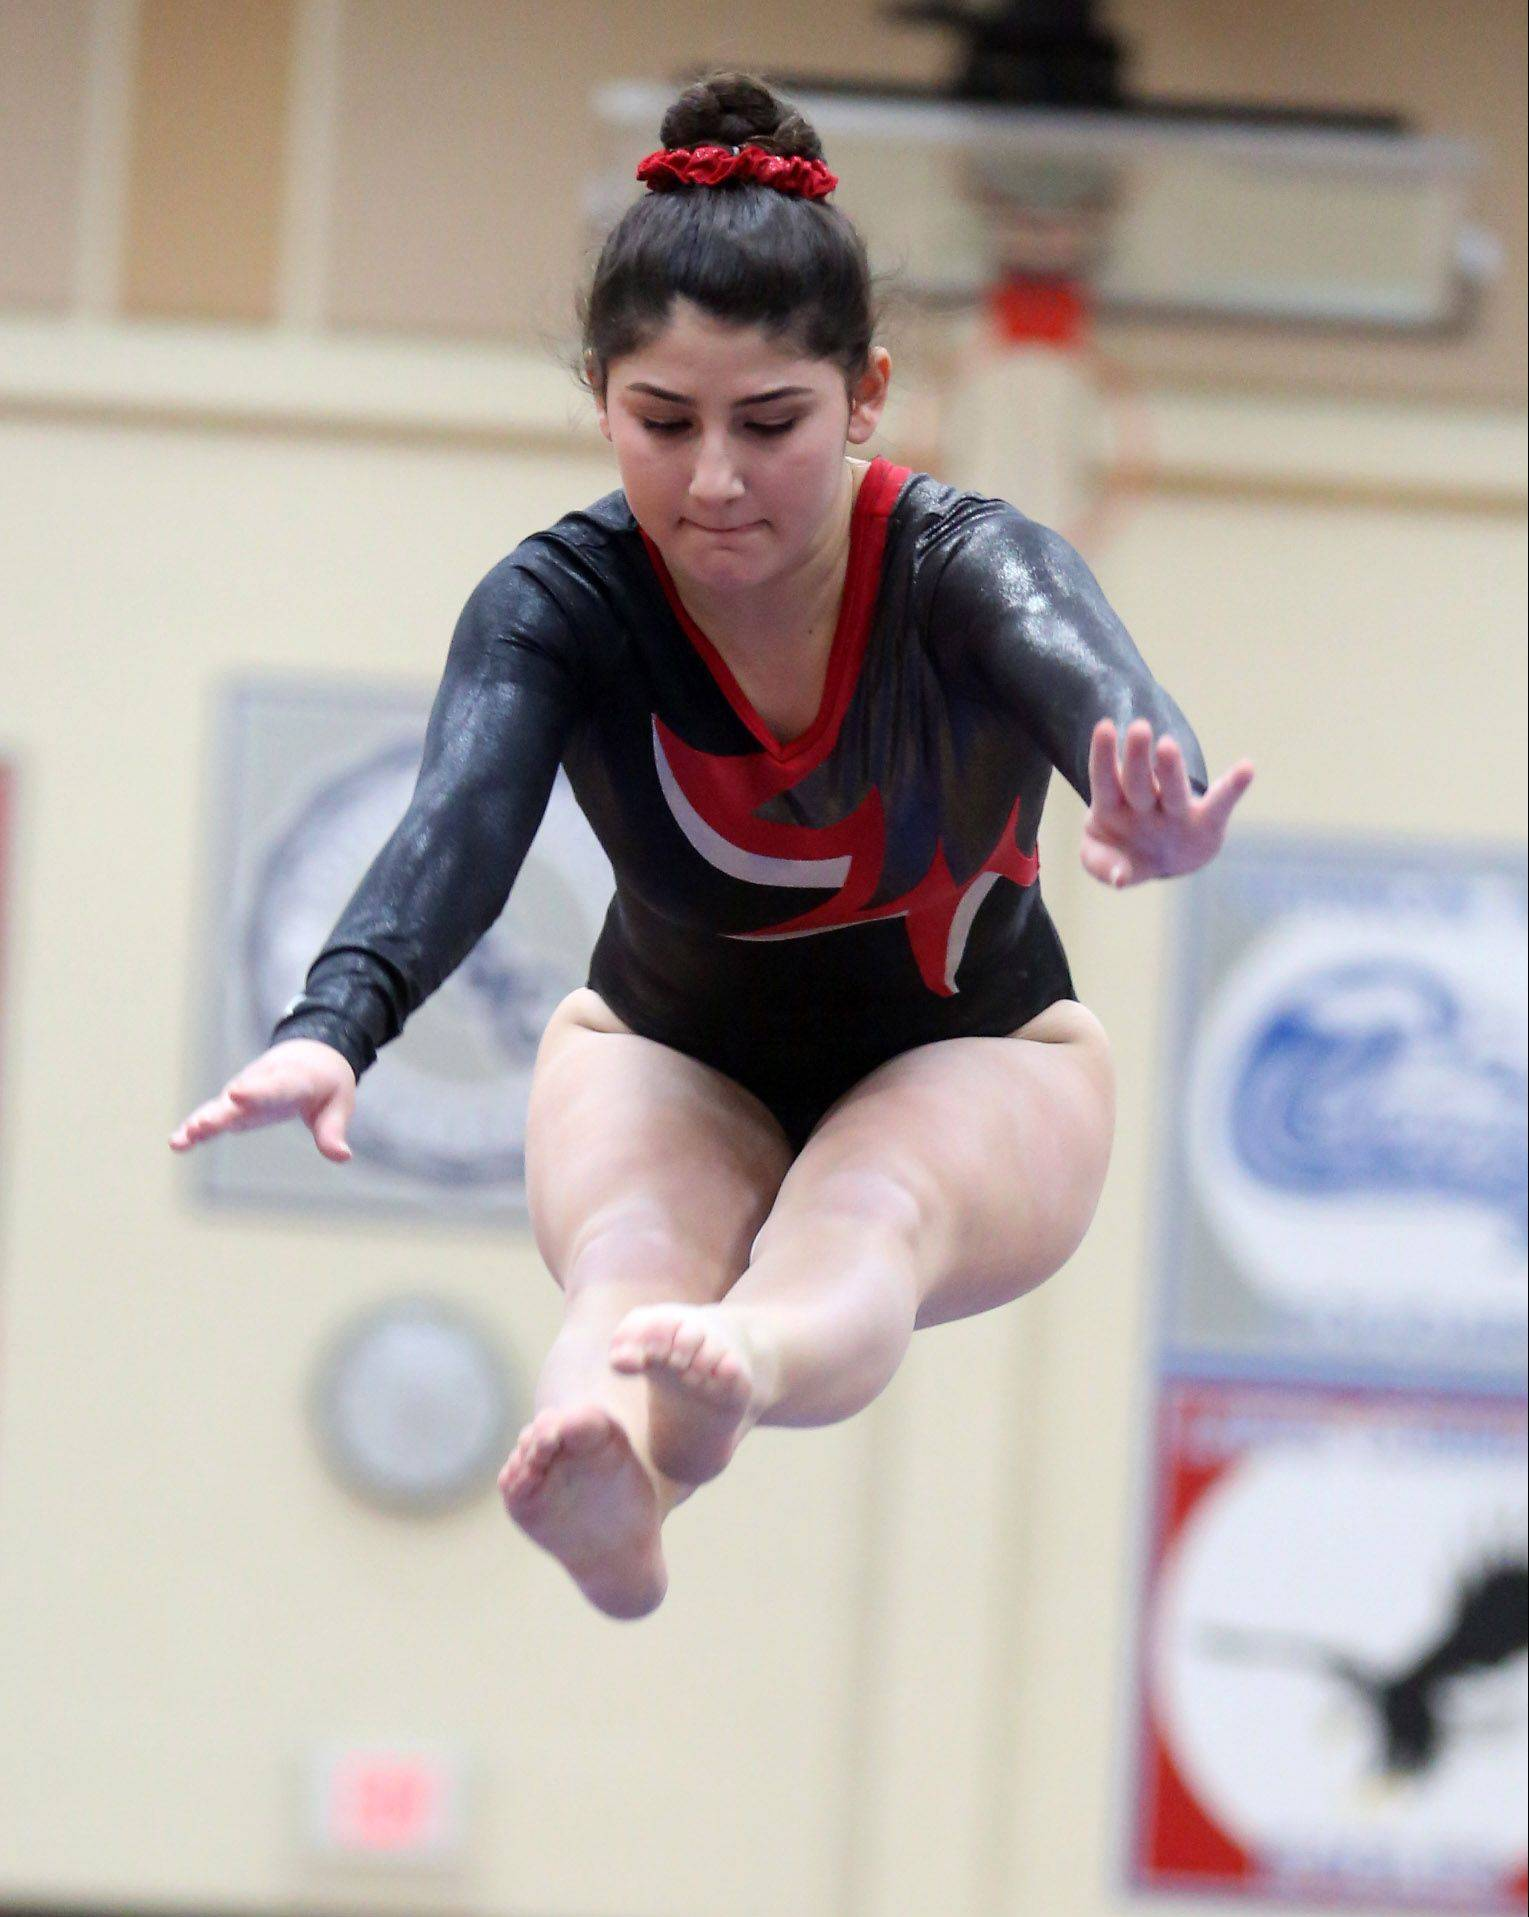 Mundelein's Nicole Ornoff competes on the balance beam in the North Suburban Conference girls gymnastics meet on Friday at Libertyville.